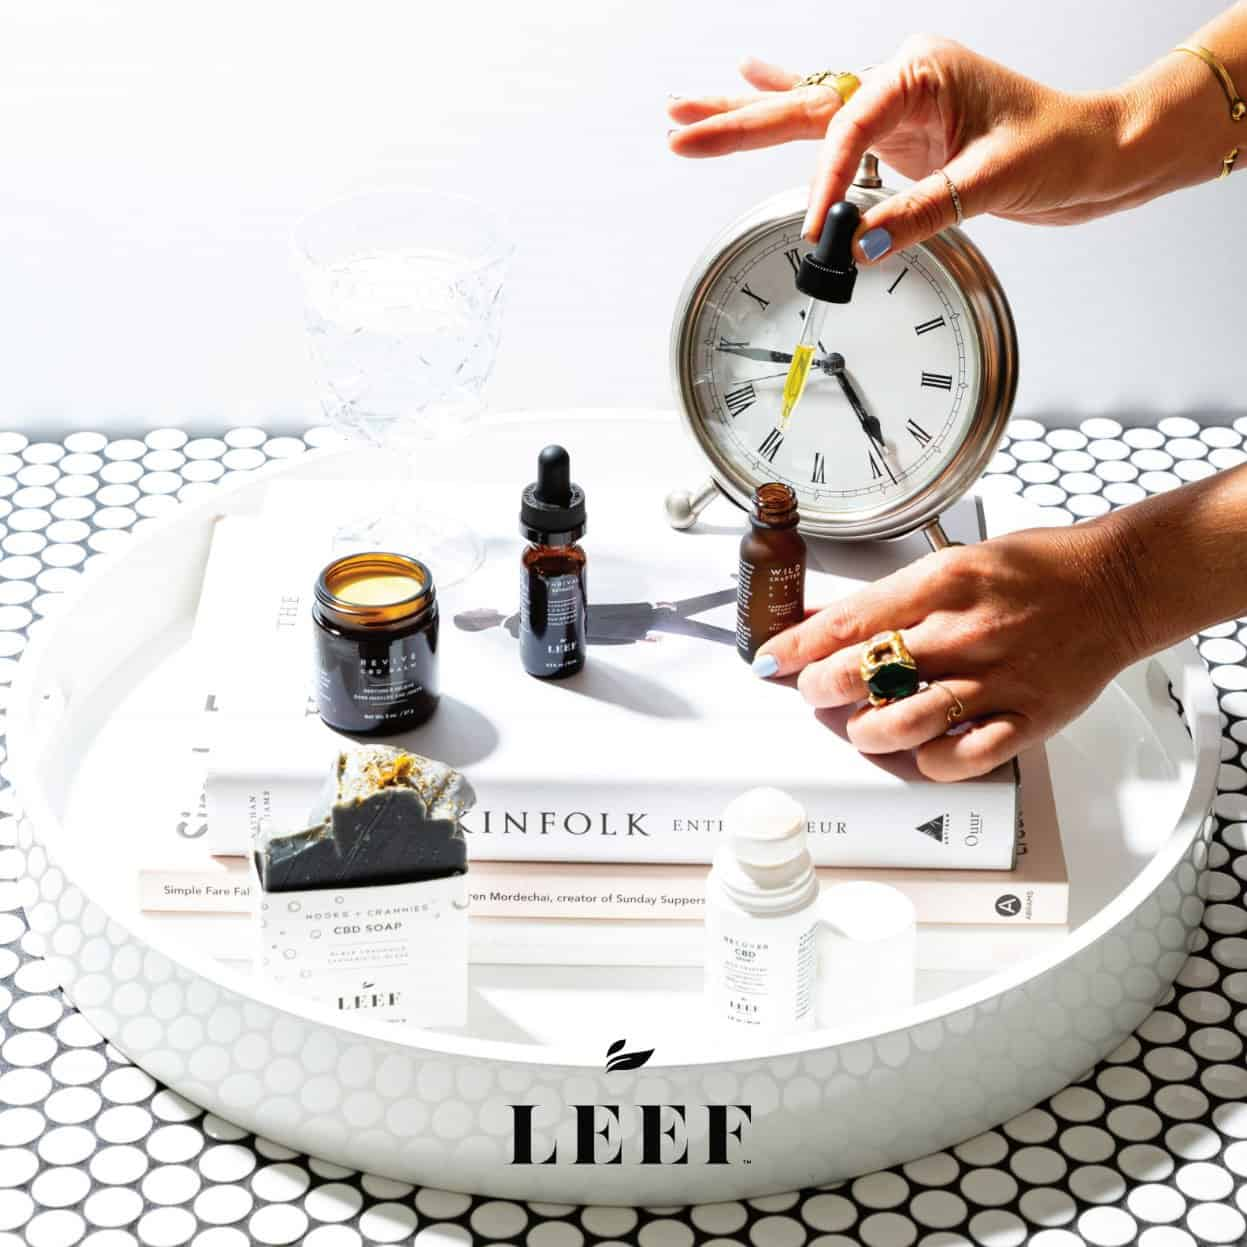 LEEF Organics CBD Review - Their CBD Products